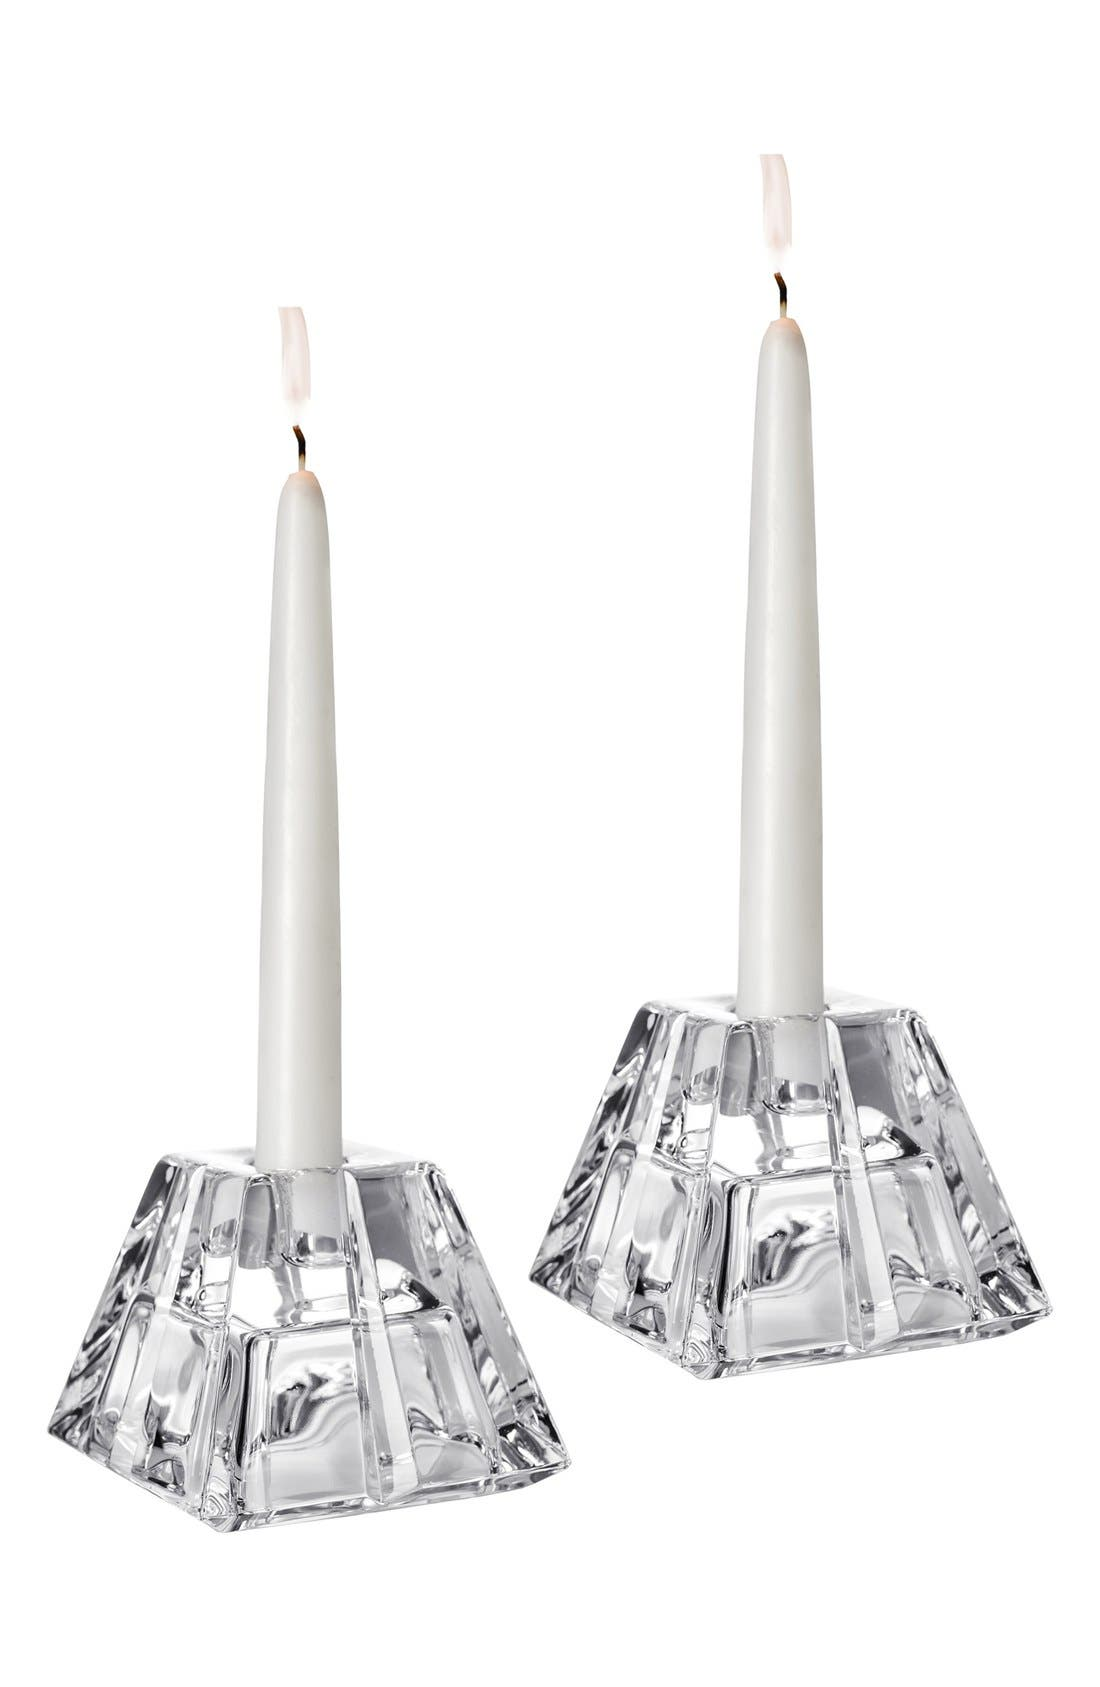 Main Image - Orrefors 'Plaza' Crystal Candlesticks (Set of 2)